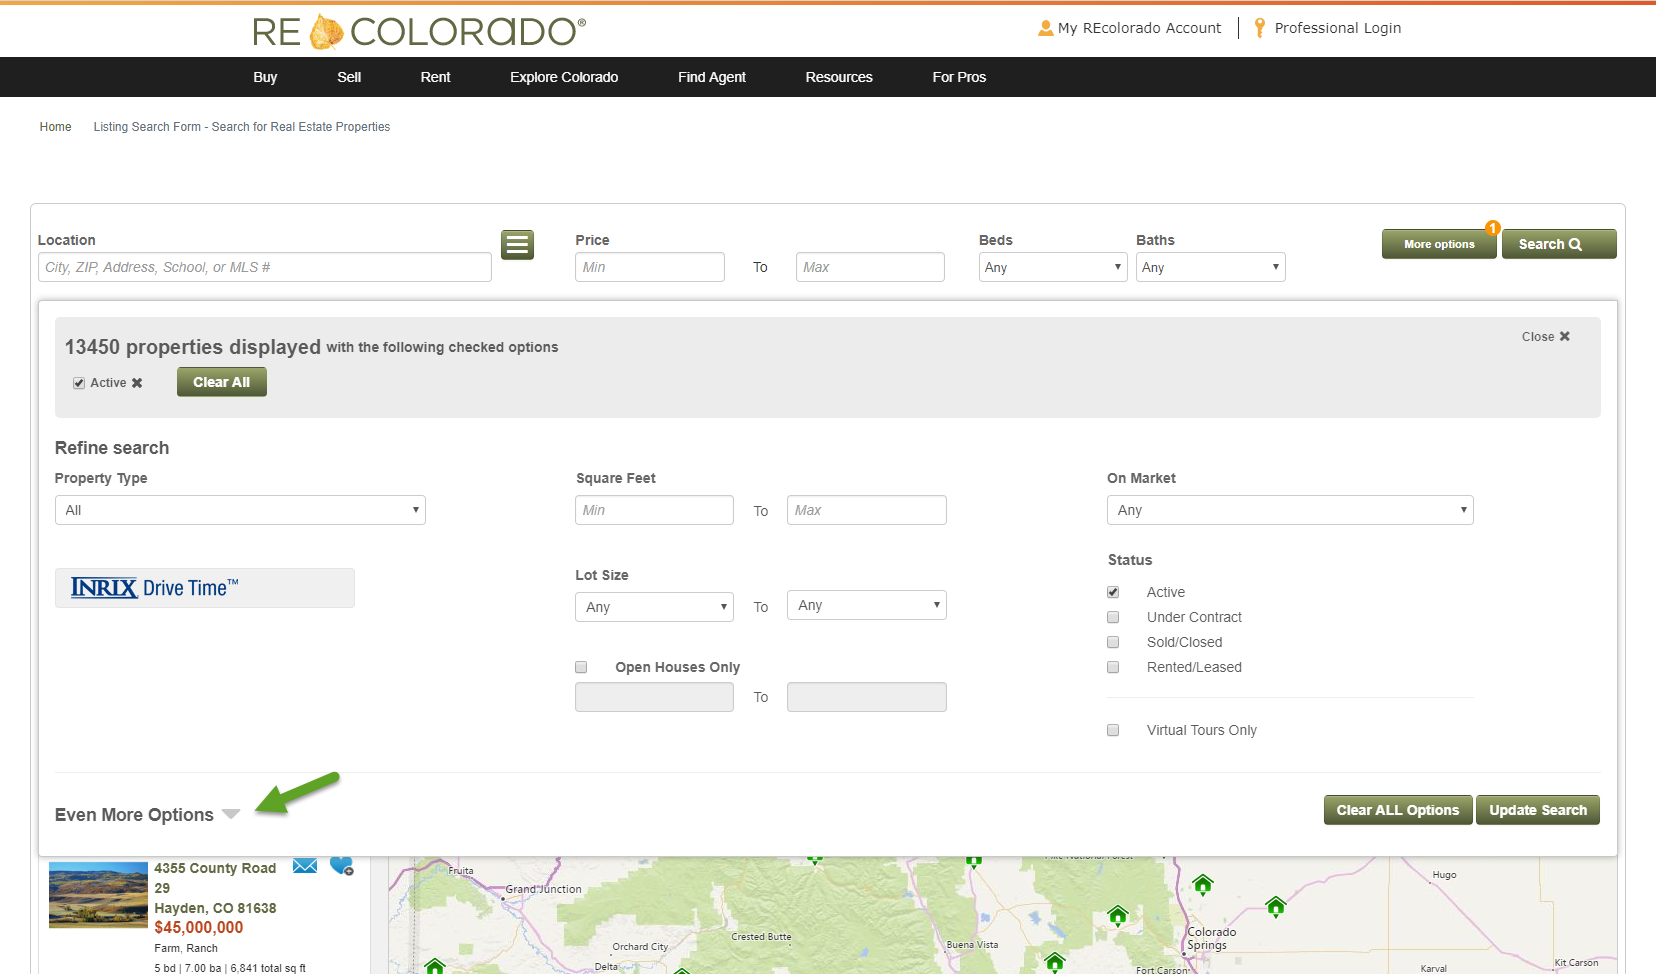 REcolorado home search fields even more options